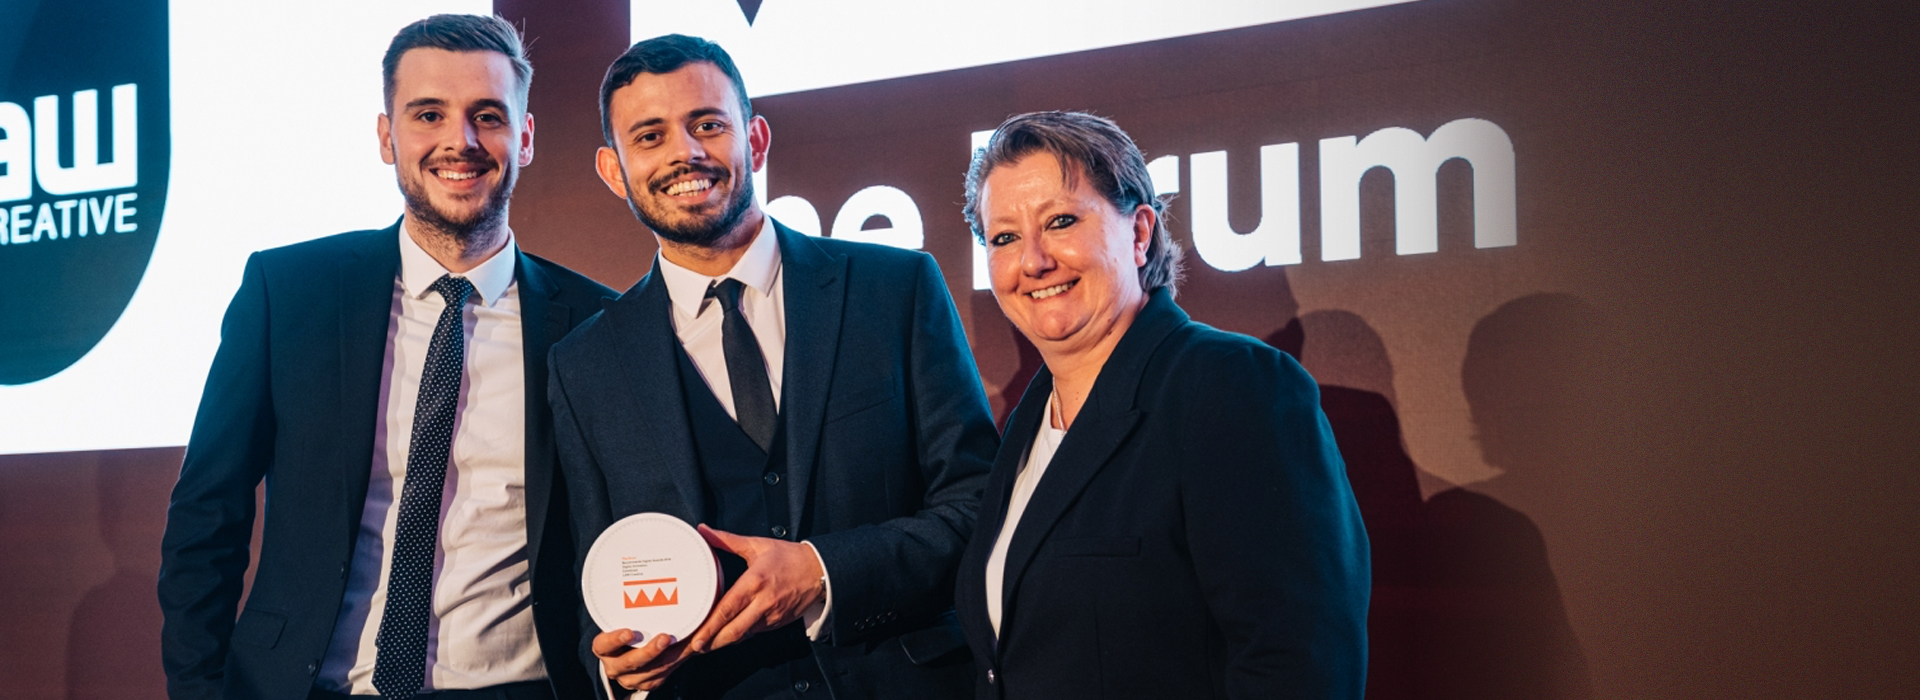 LAW CREATIVE WINS AT THE DRUM RECOMMENDS DIGITAL AWARDS